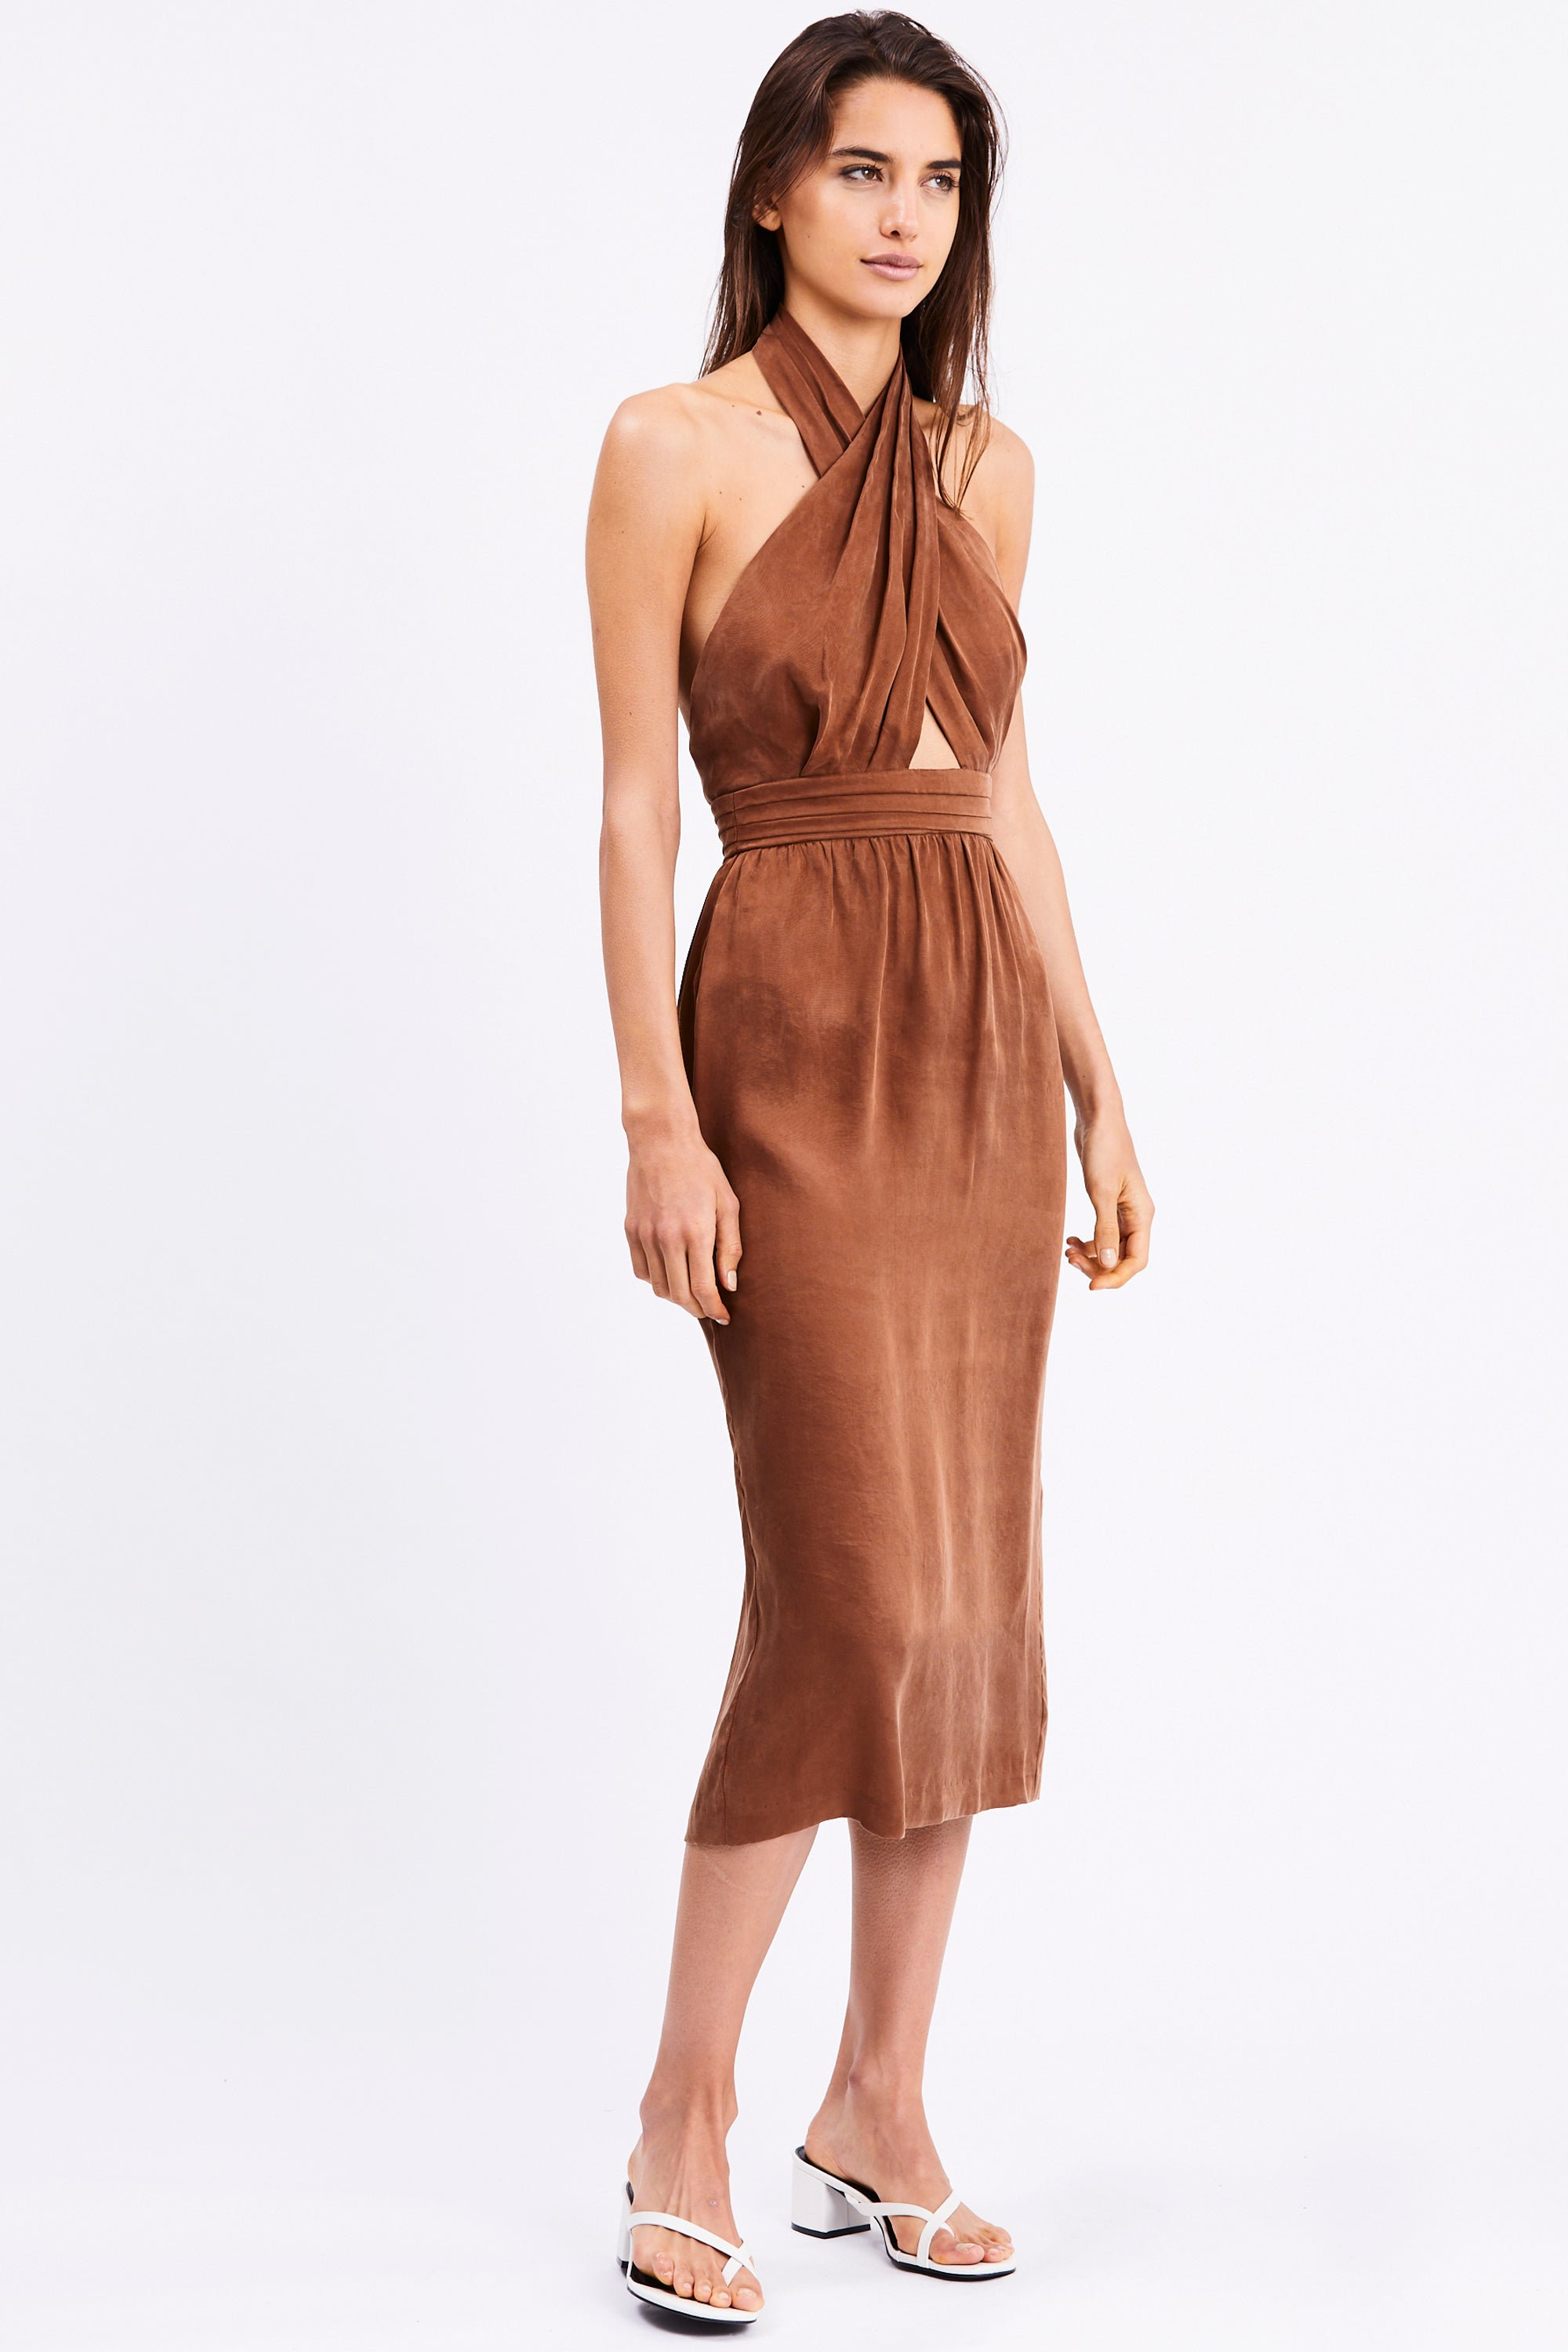 CROSS PATHS MIDI DRESS | BRICK